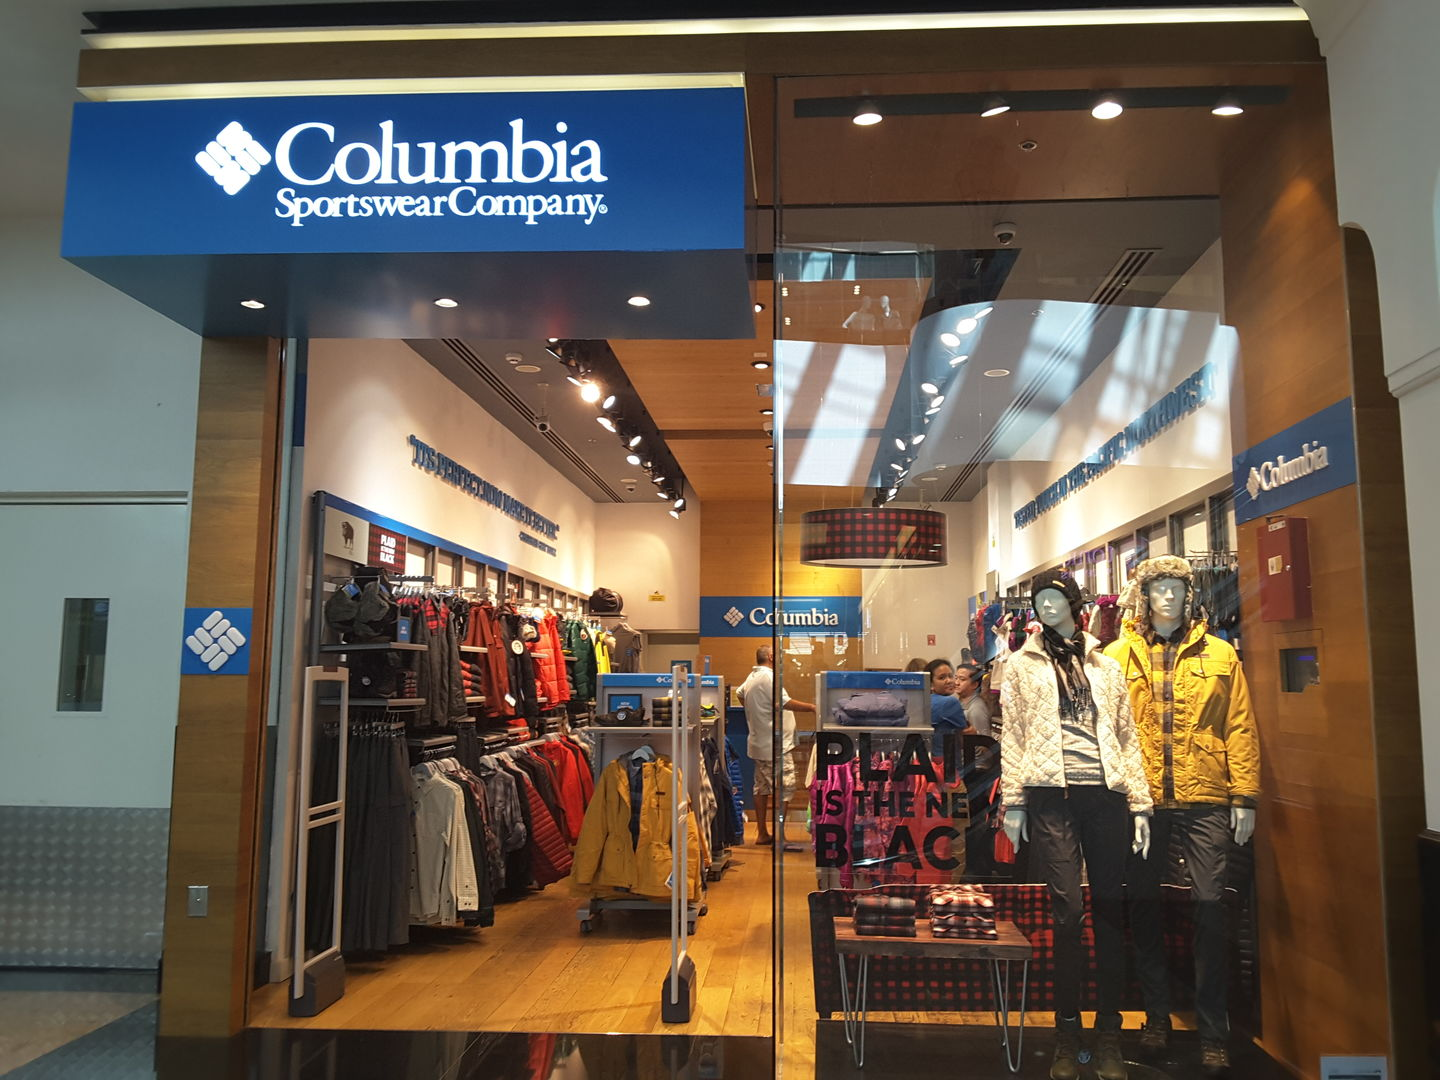 HiDubai-business-columbia-sportswear-company-shopping-apparel-al-barsha-1-dubai-2